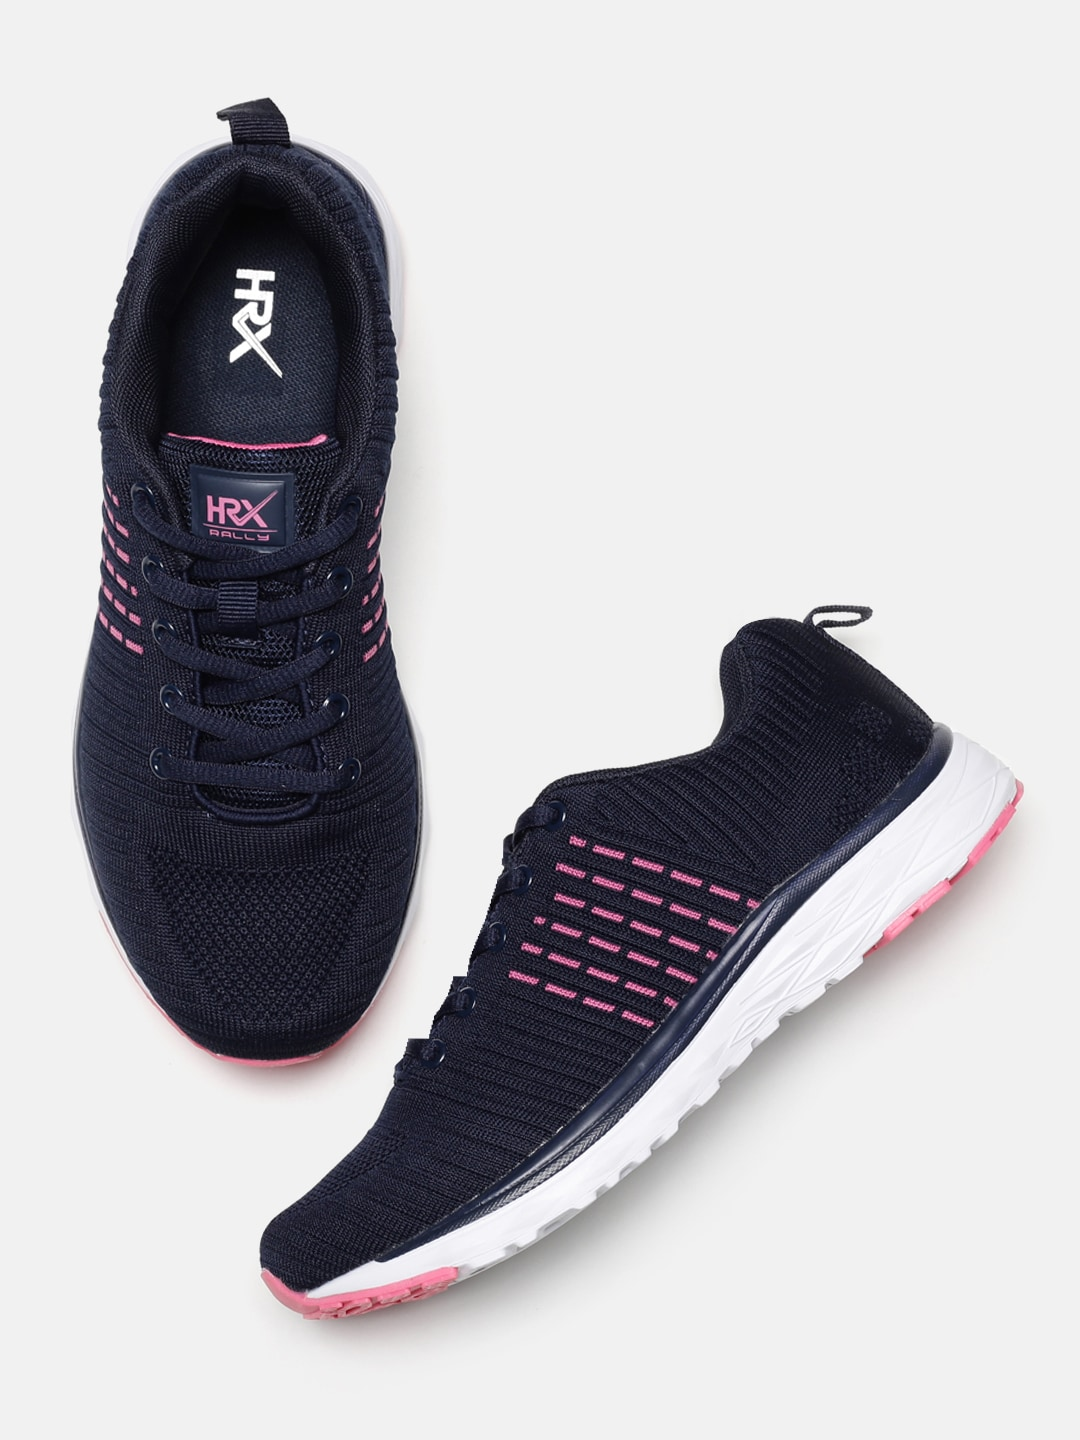 newest 9189c c94f3 Sports Shoes for Women - Buy Women Sports Shoes Online   Myntra